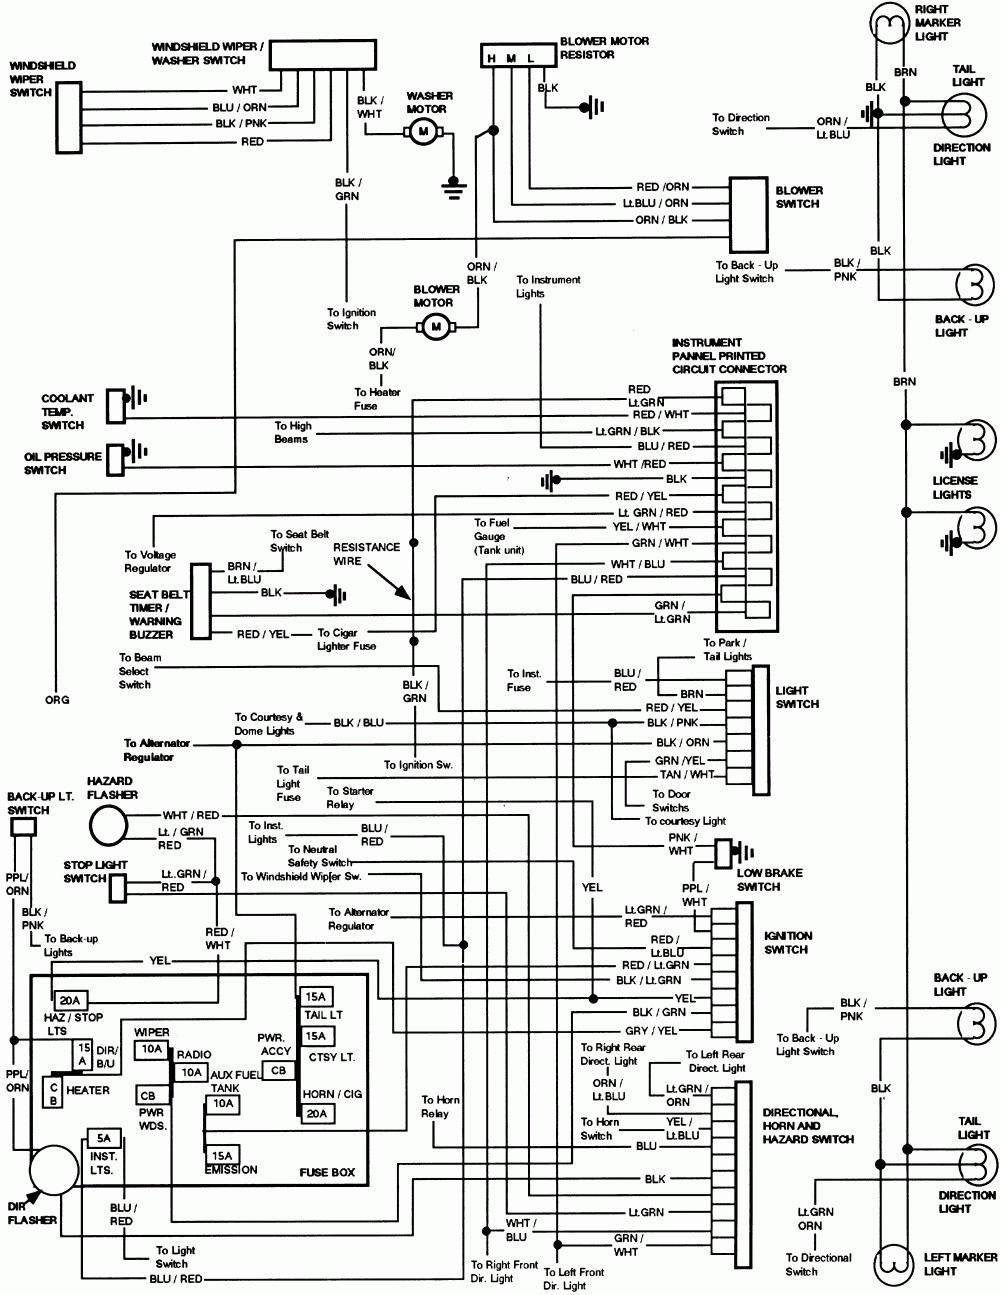 hight resolution of ford f750 wiring harness wiring diagram sample2007 f750 wiring harness diagram wiring diagram new ford f750